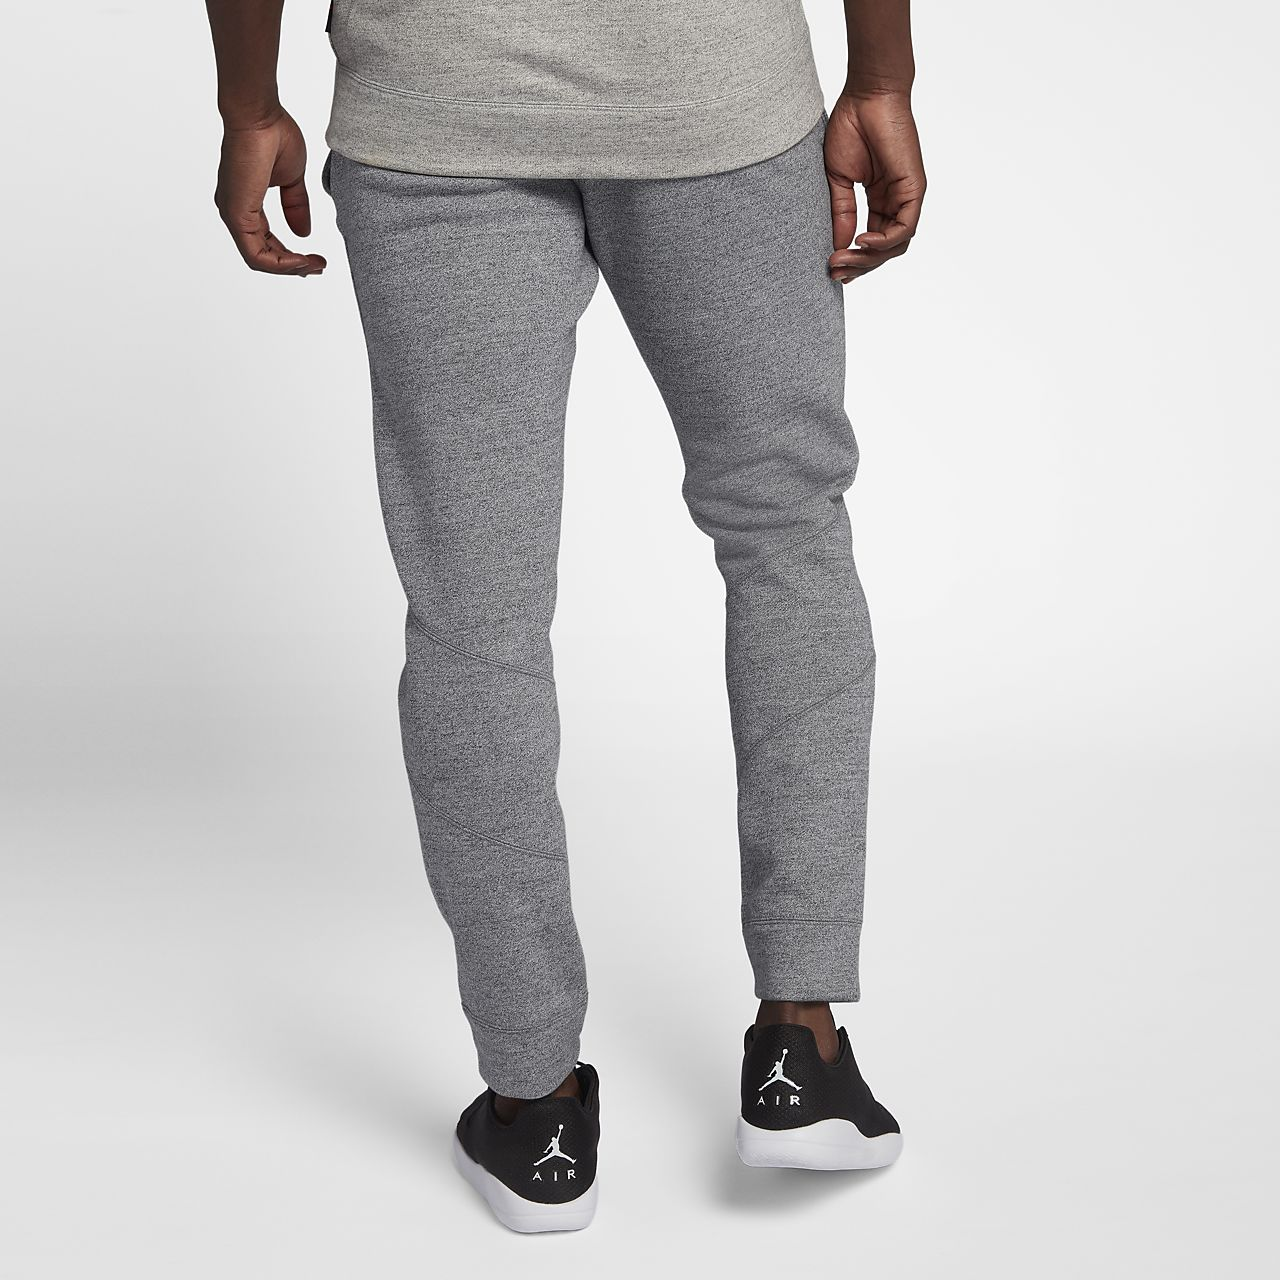 9fabd80f099d Jordan Sportswear Wings Men s Fleece Pants. Nike.com